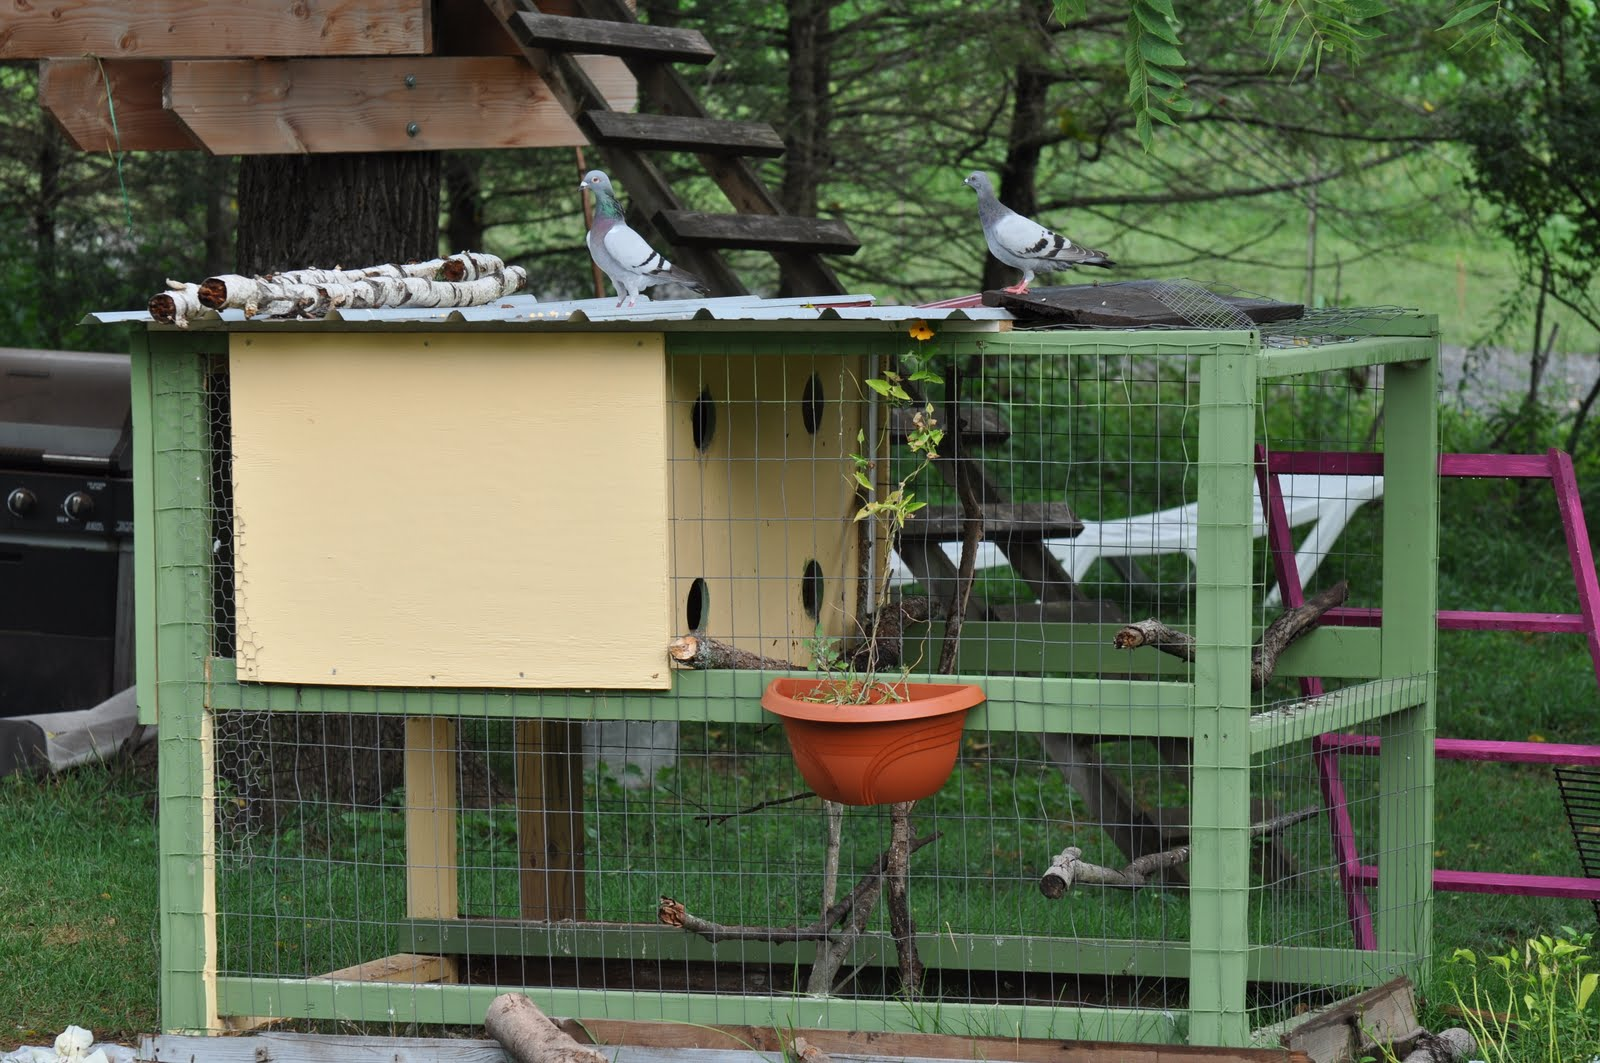 Pigeon house plans and photos - How To Make A Cat Proof Trap For Pigeon Loft It S So Easy